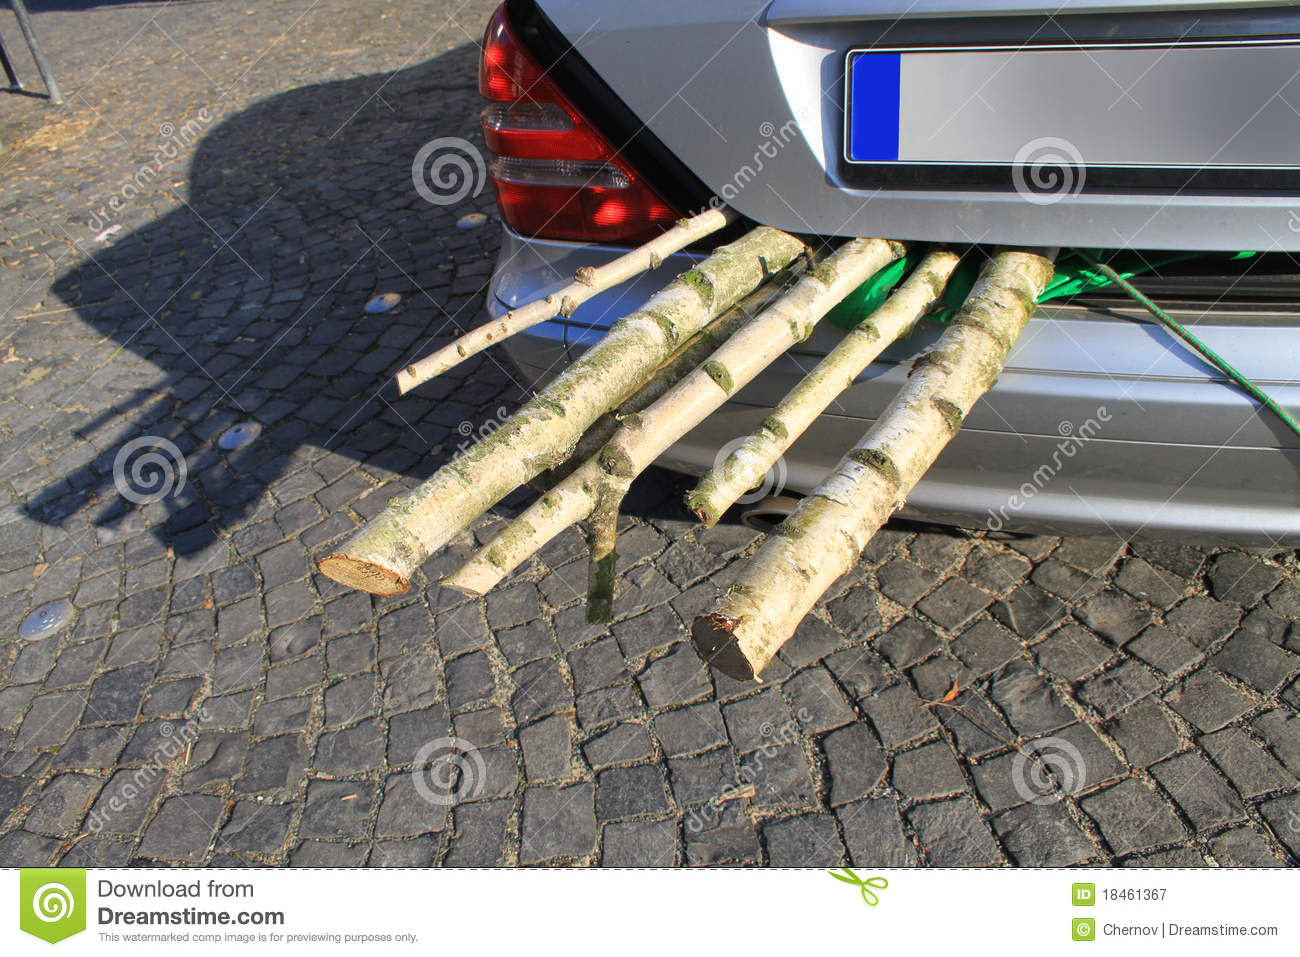 Birch Fire Wood In A Motor Vehicle Luggage Carrier Royalty Free Stock Photography Image 18461367